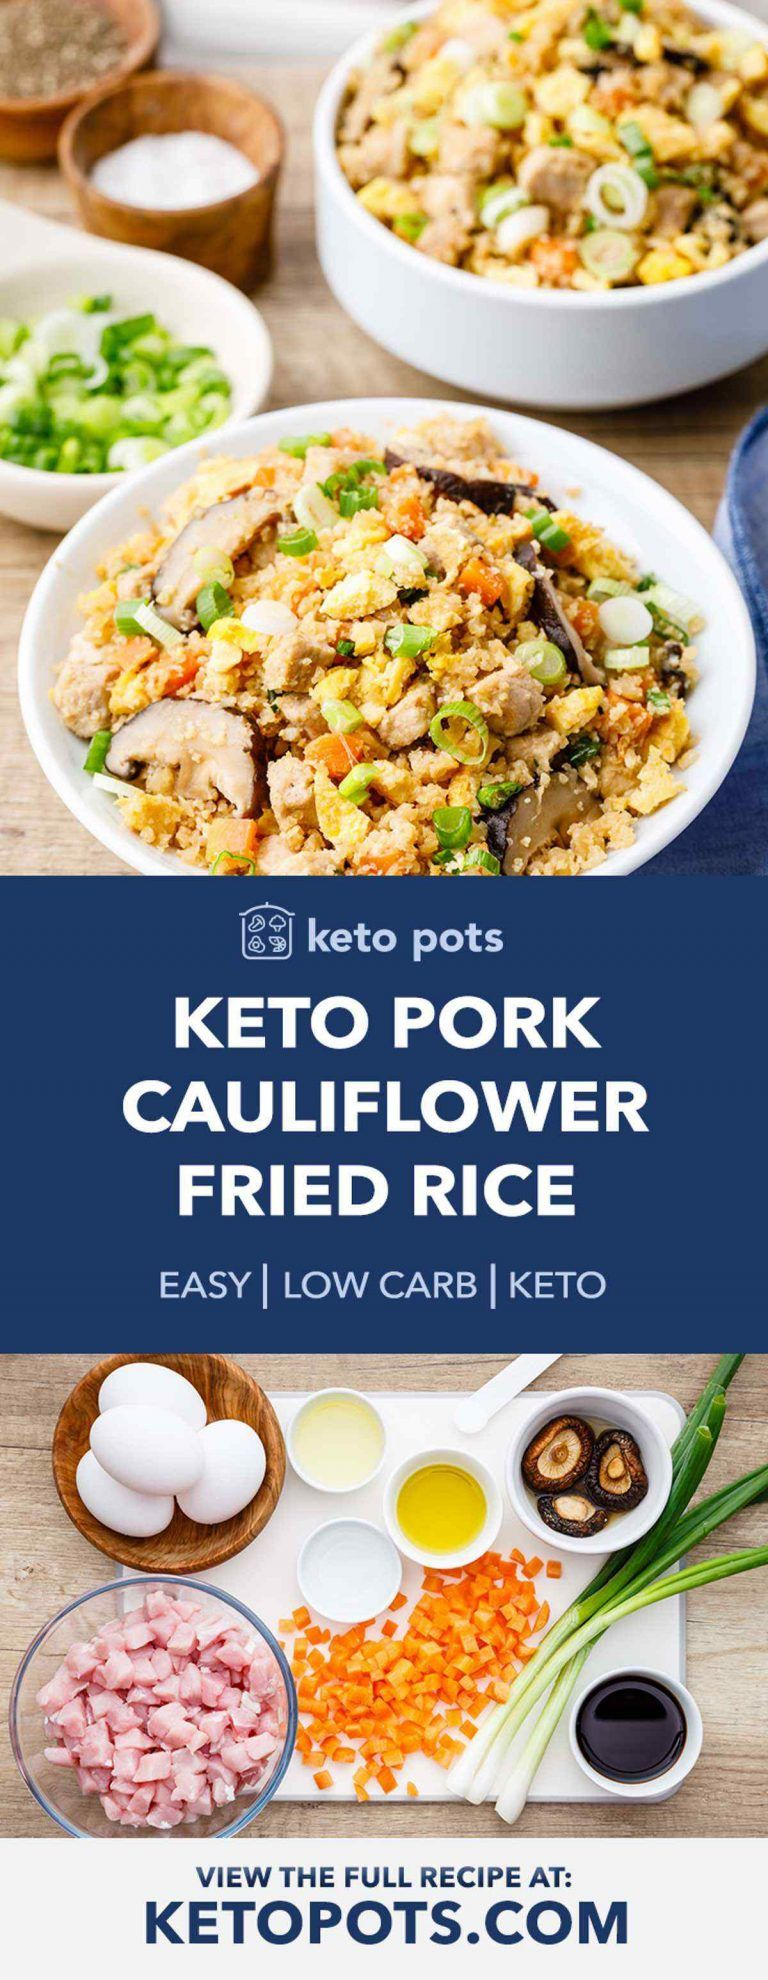 Addictive Keto Pork Cauliflower Fried Rice (YUM) - Keto Pots #cauliflowerfriedrice